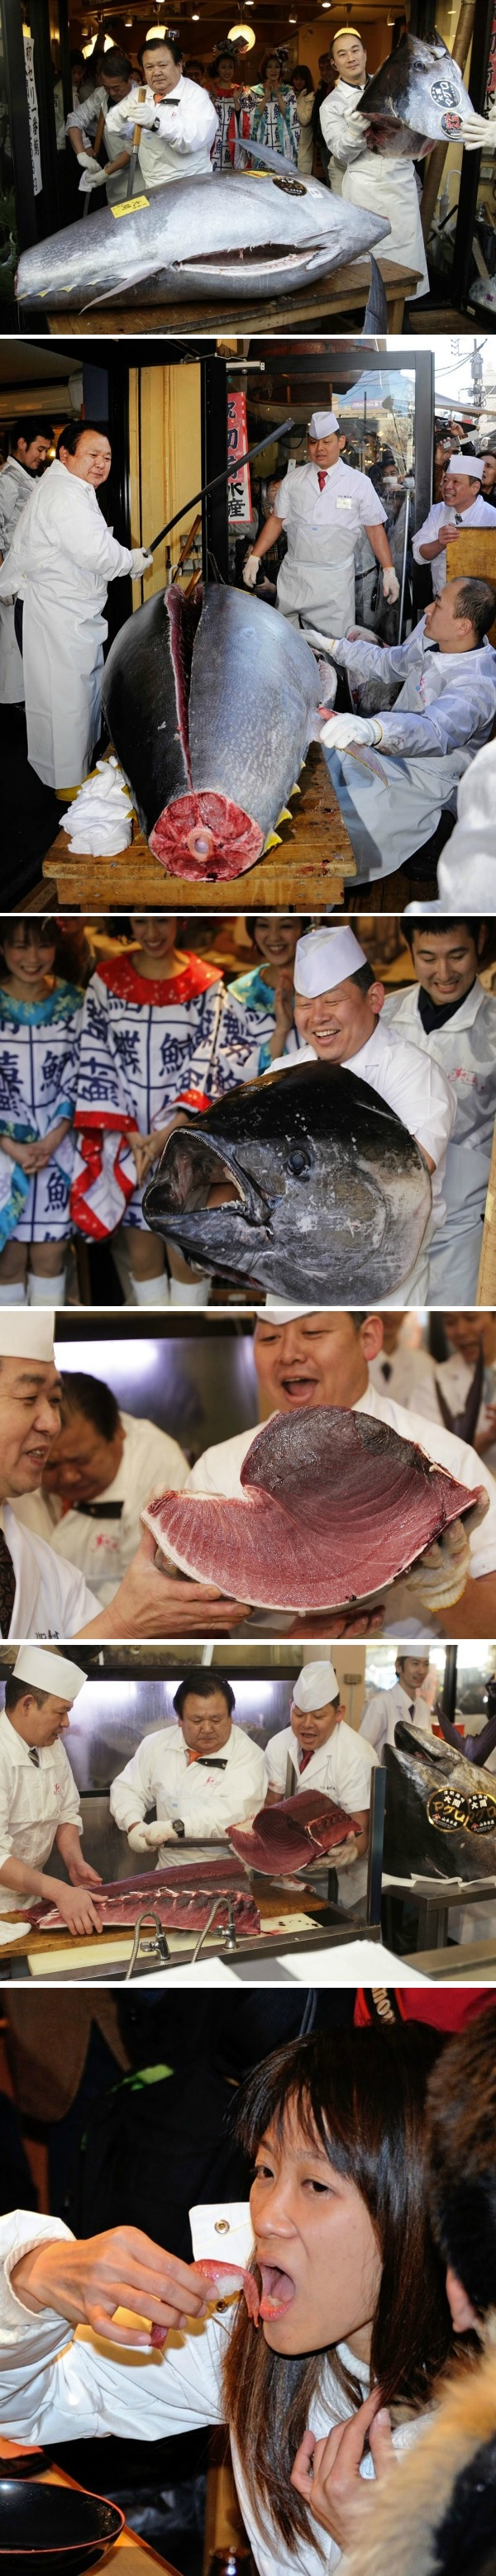 The world's most expensive tuna being sliced open and eaten